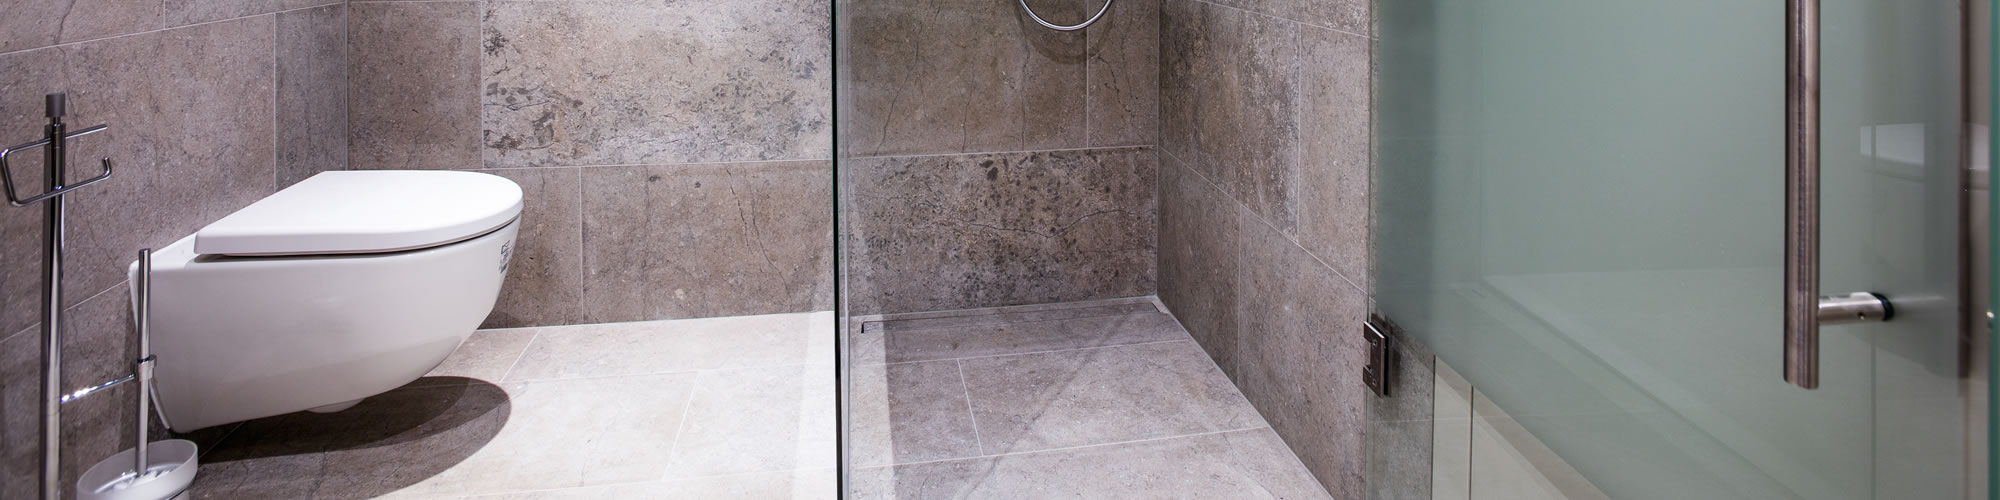 banner-home-wetroom